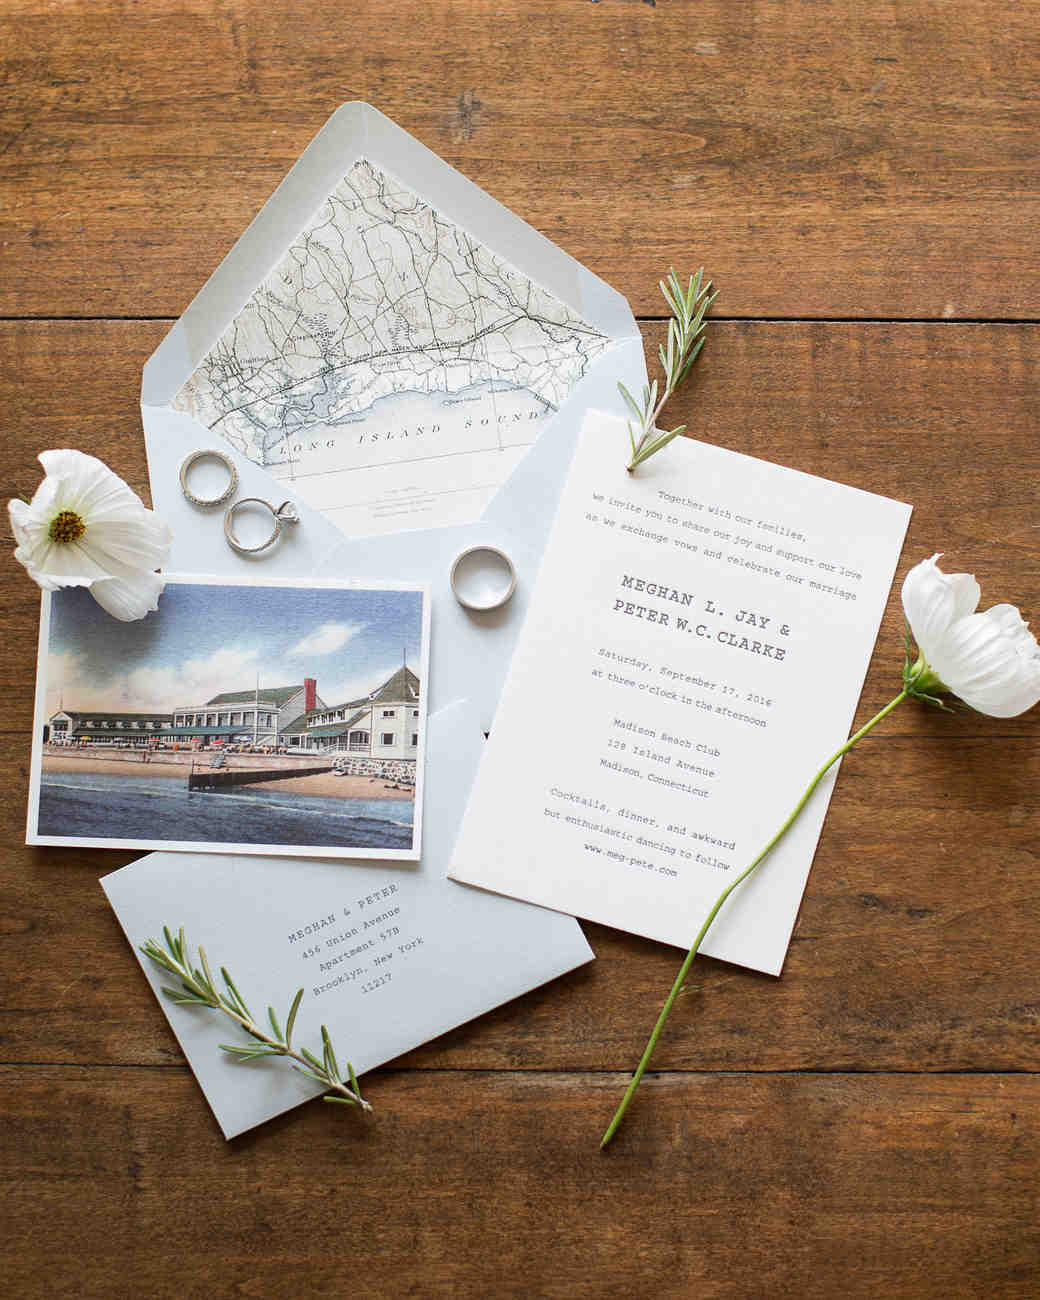 nautical invitation set with water front venue history design elements